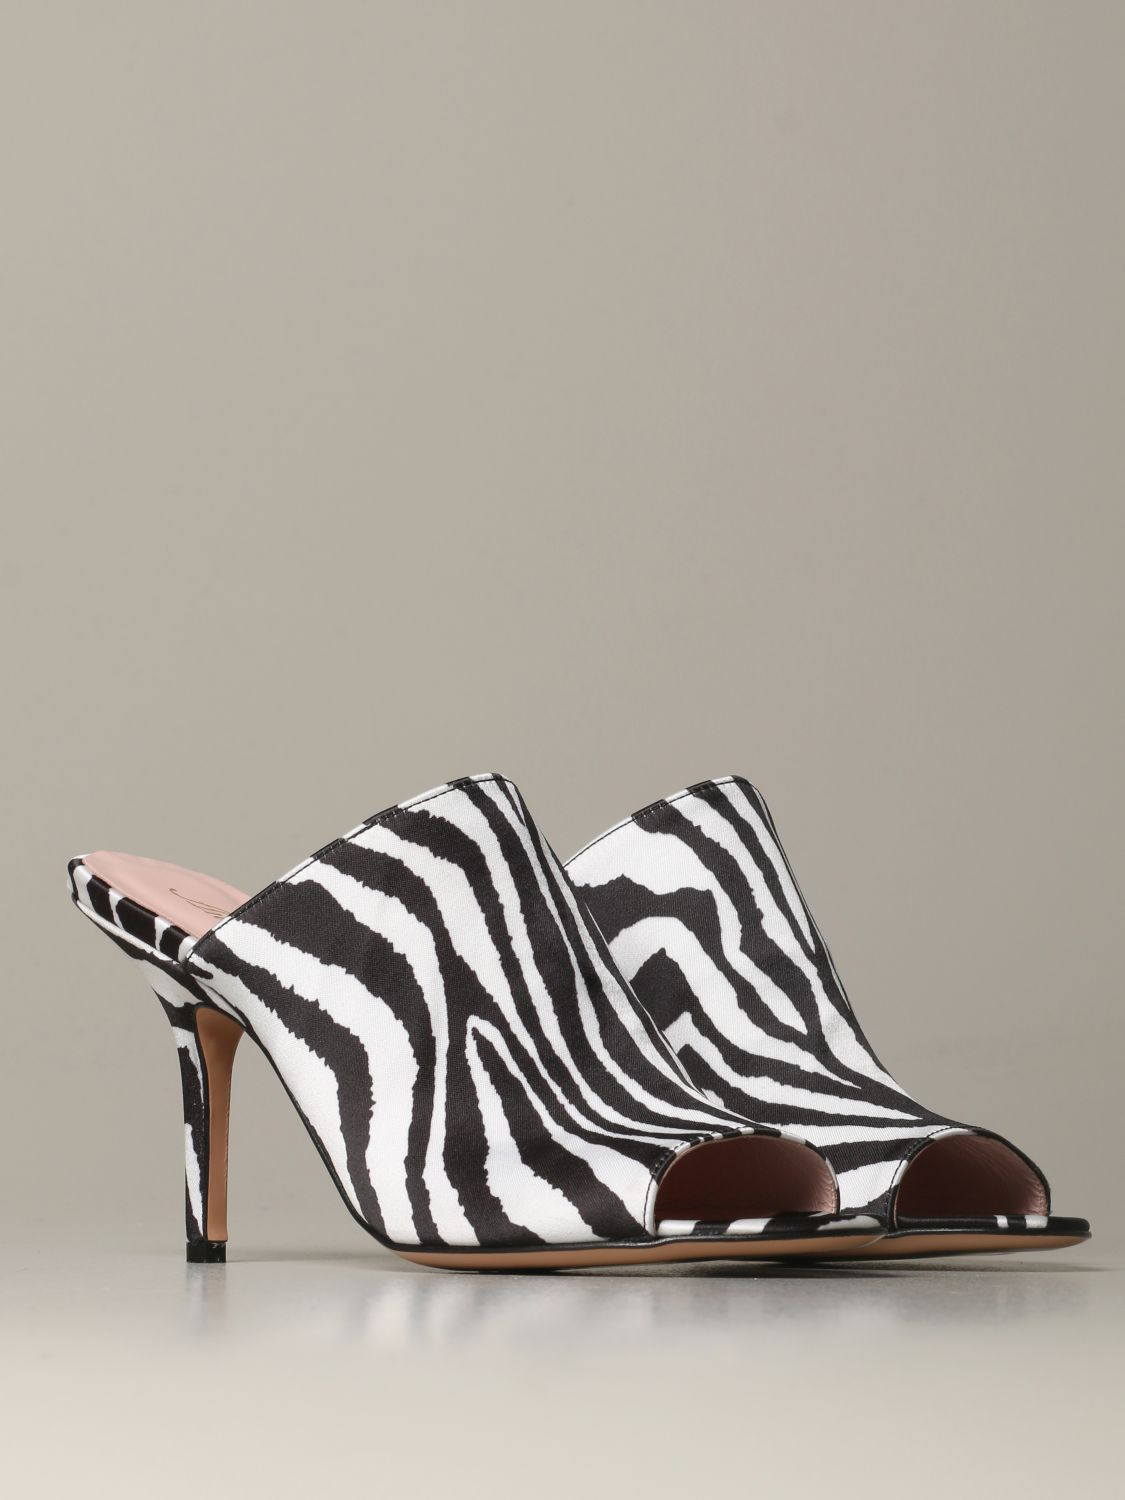 Heeled sandals Anna F.: Shoes women Anna F. multicolor 2